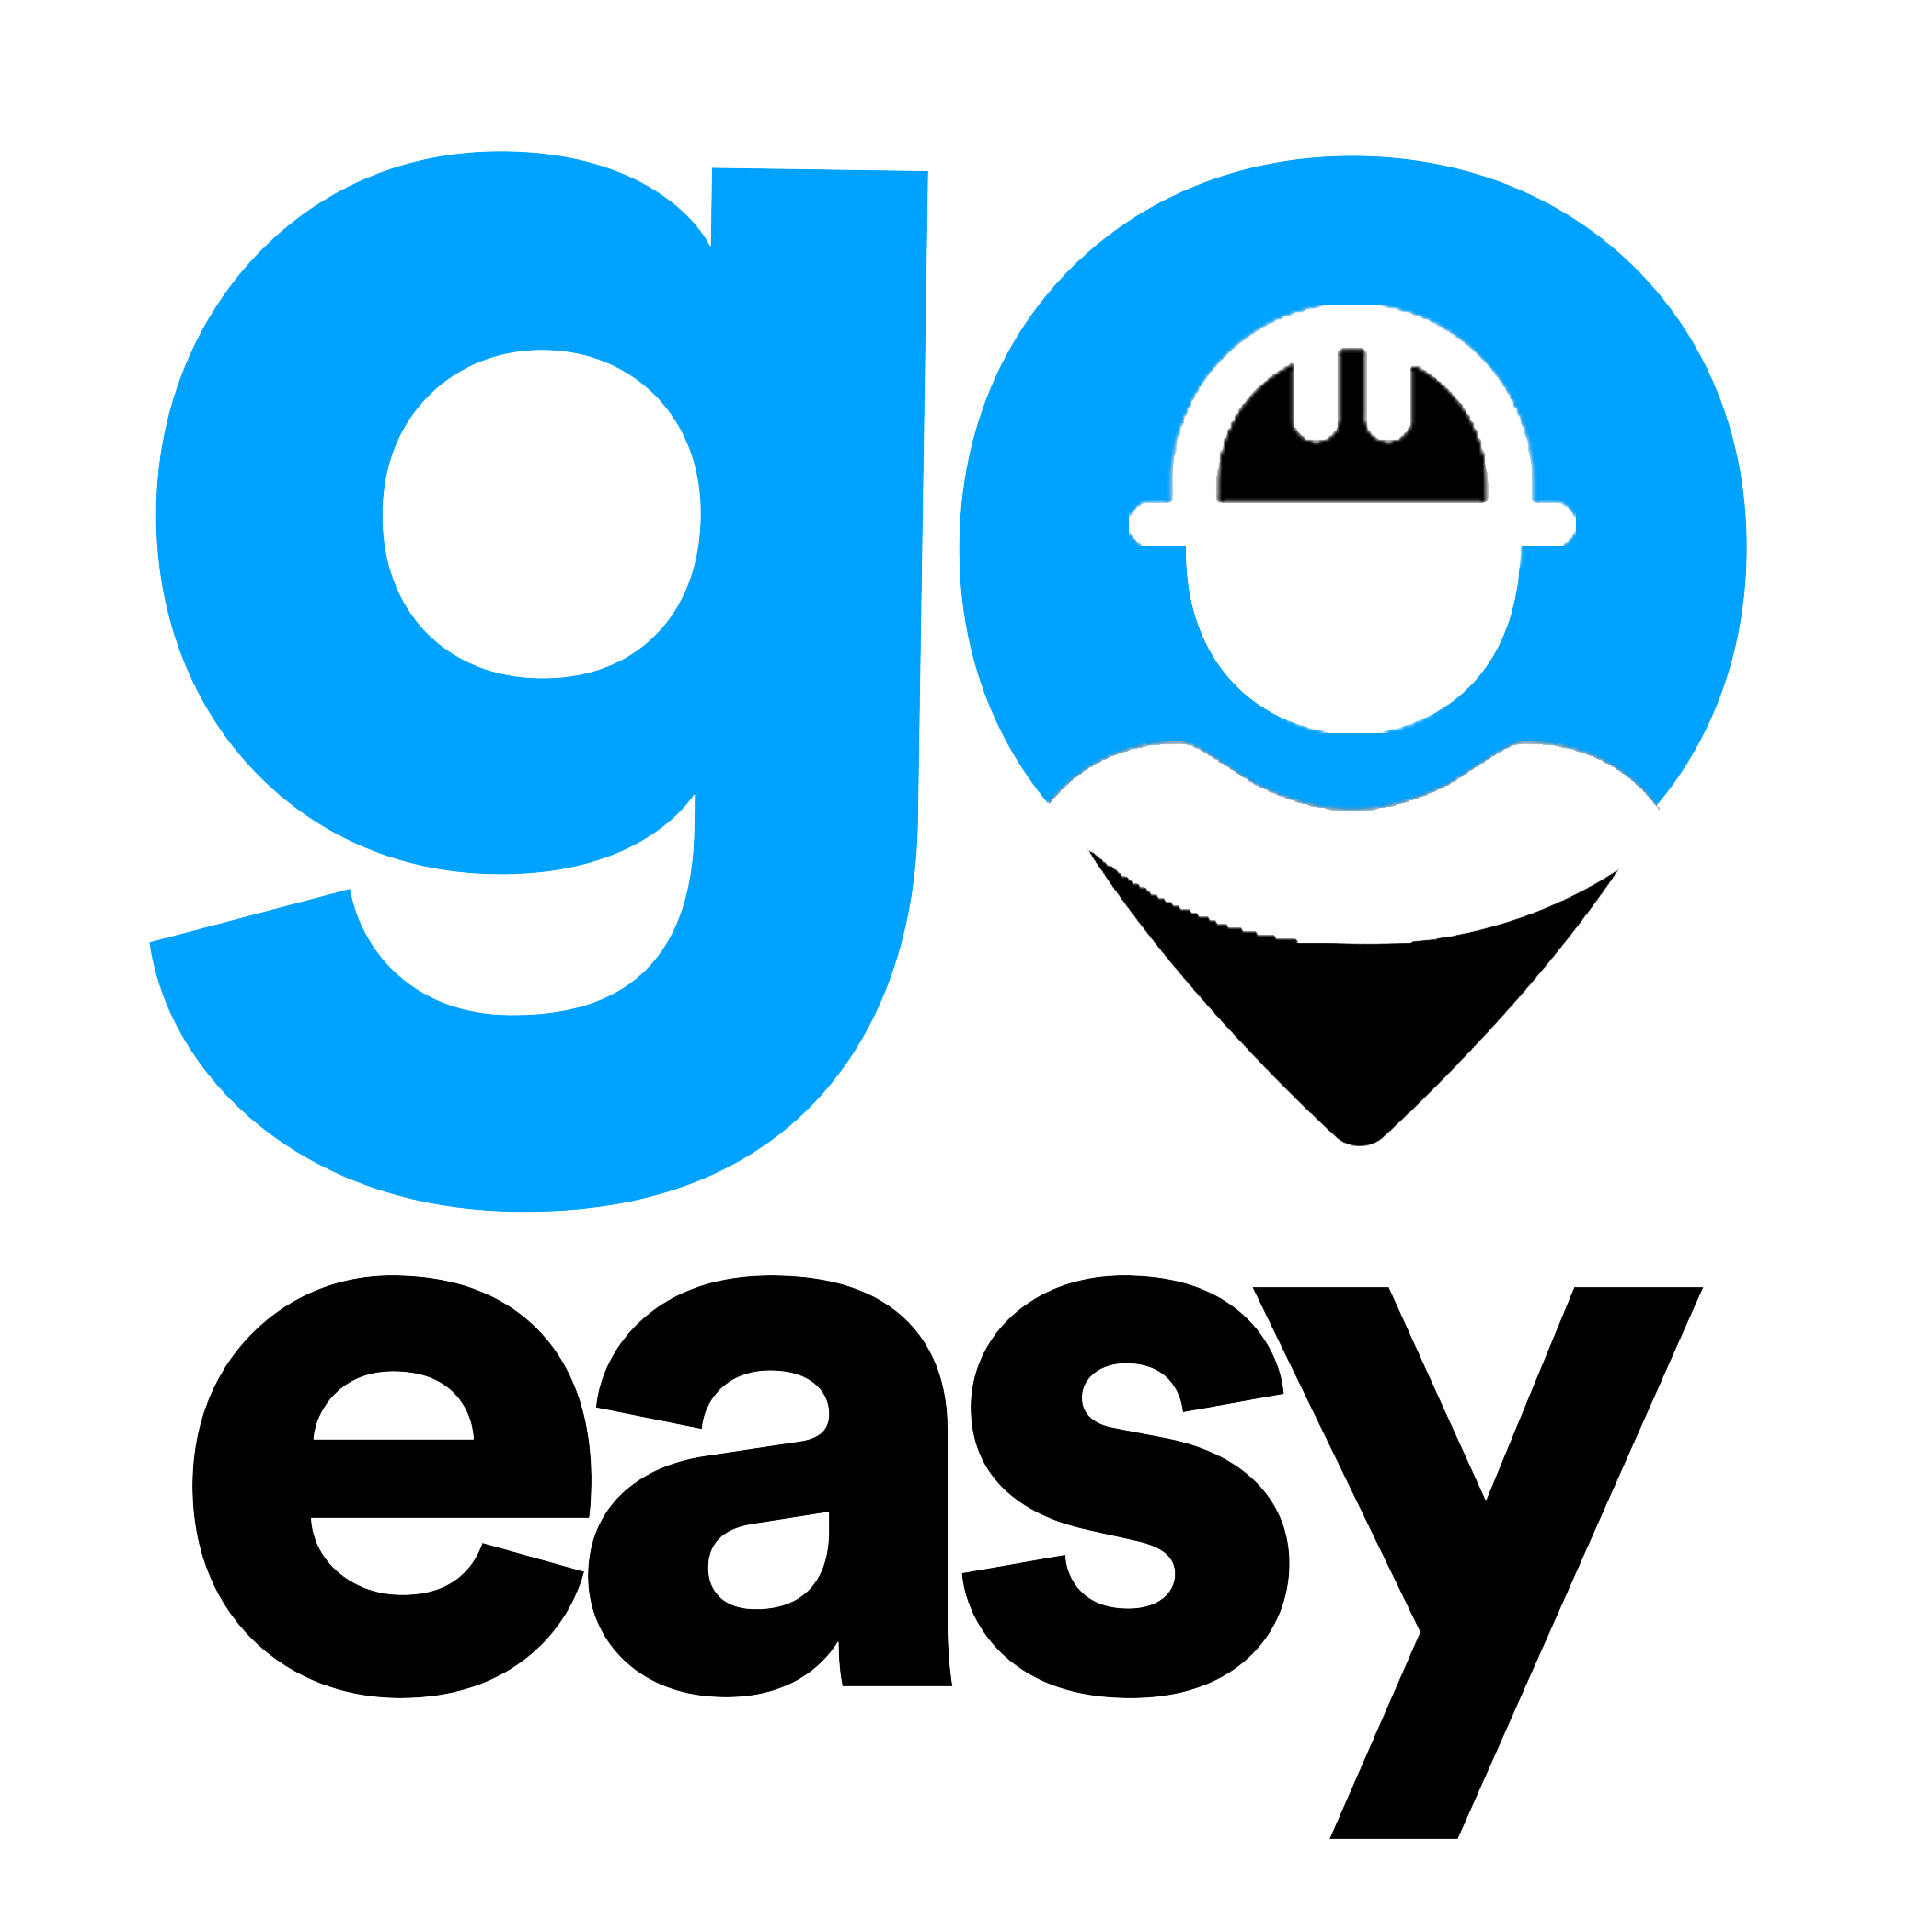 Go easy Home care services